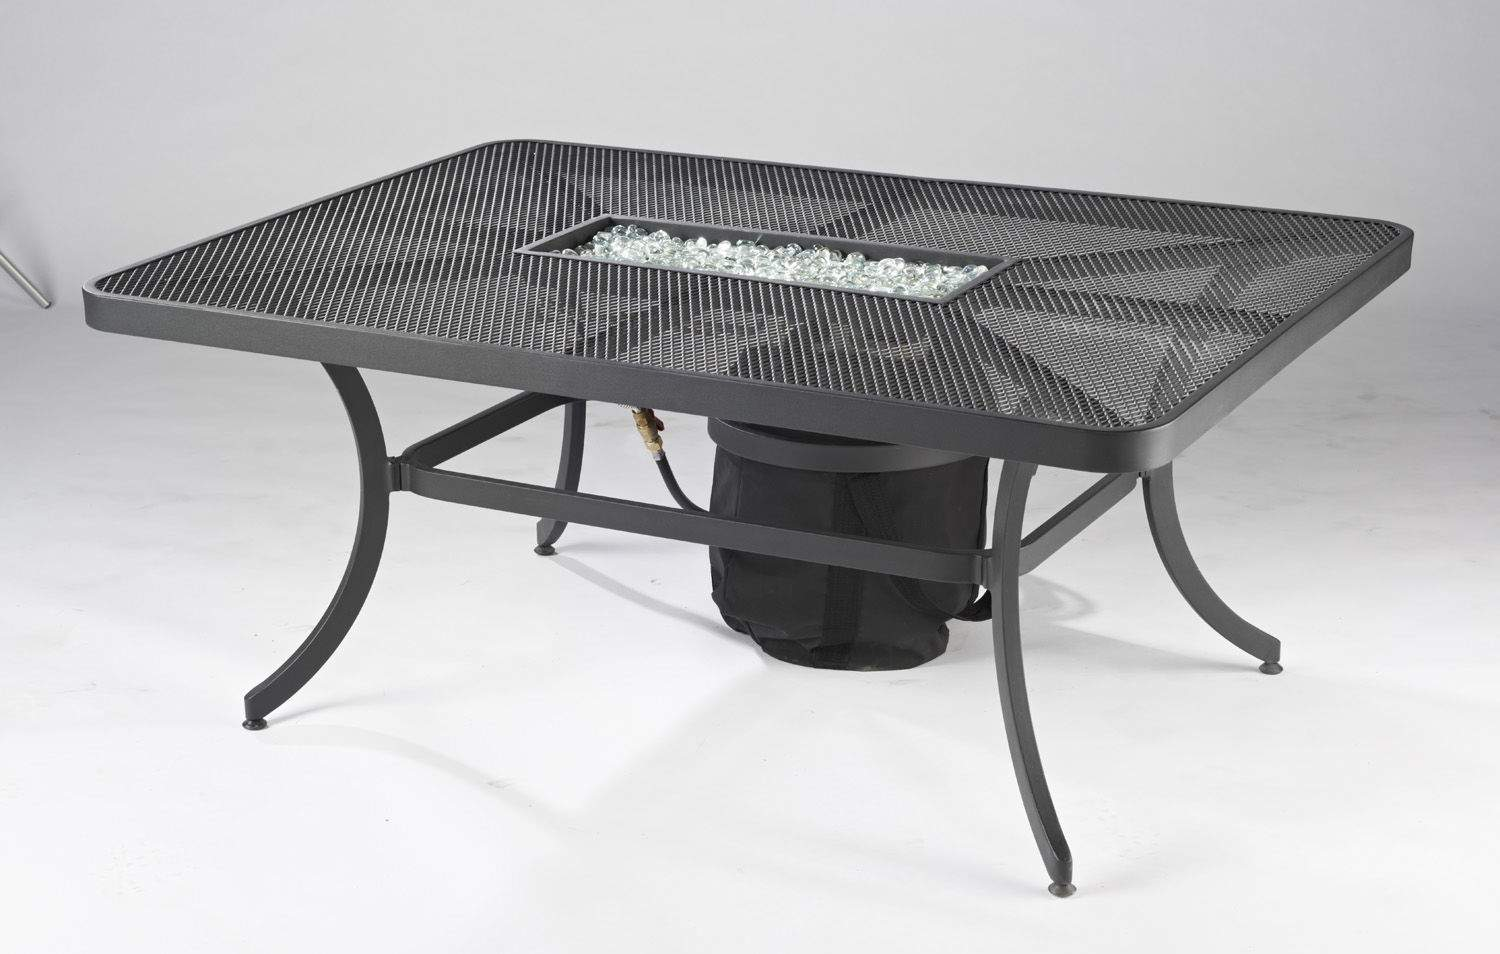 Outdoor Greatroom Company Nightfire Mesh Fire Table Rectangular New Ebay